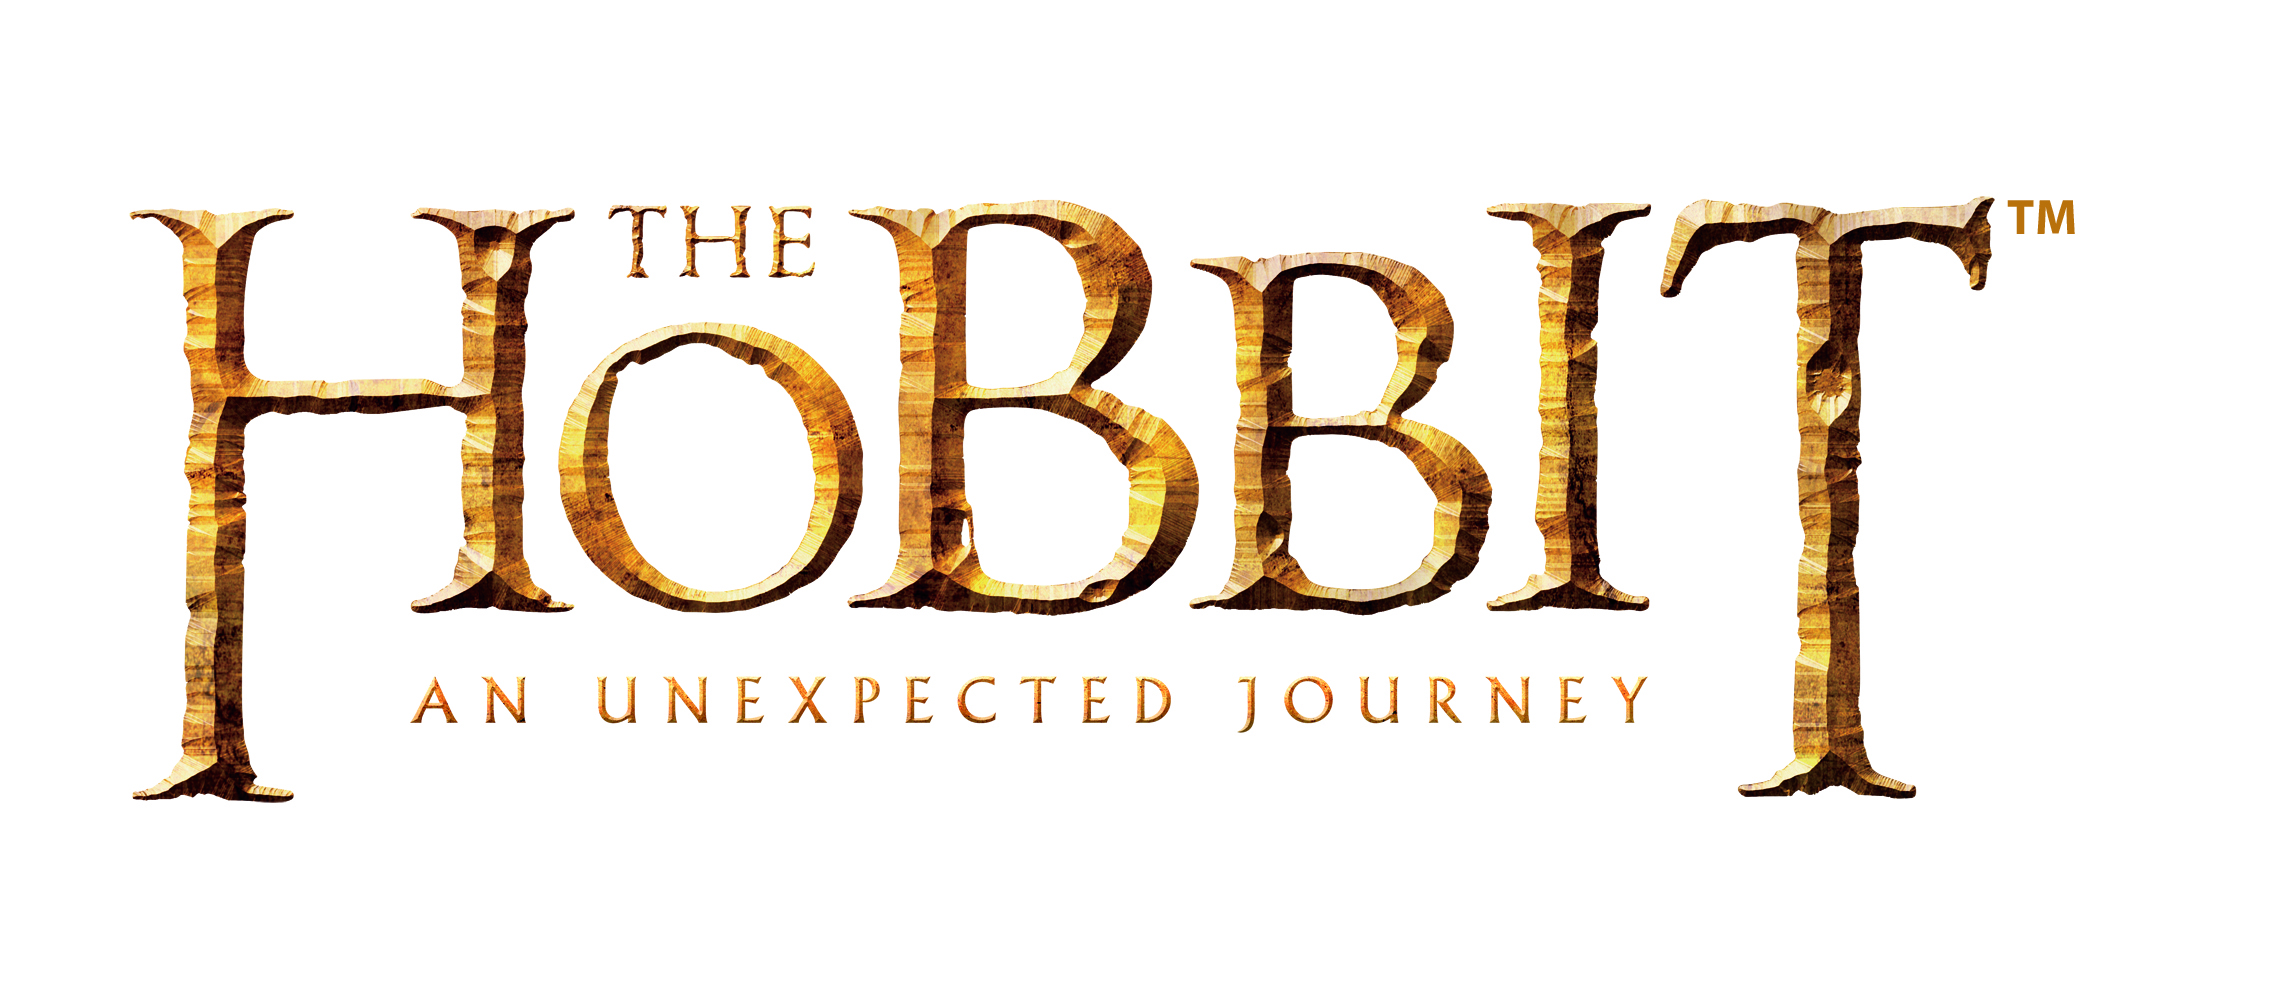 The Hobbit - An Unexpected Journey Logo